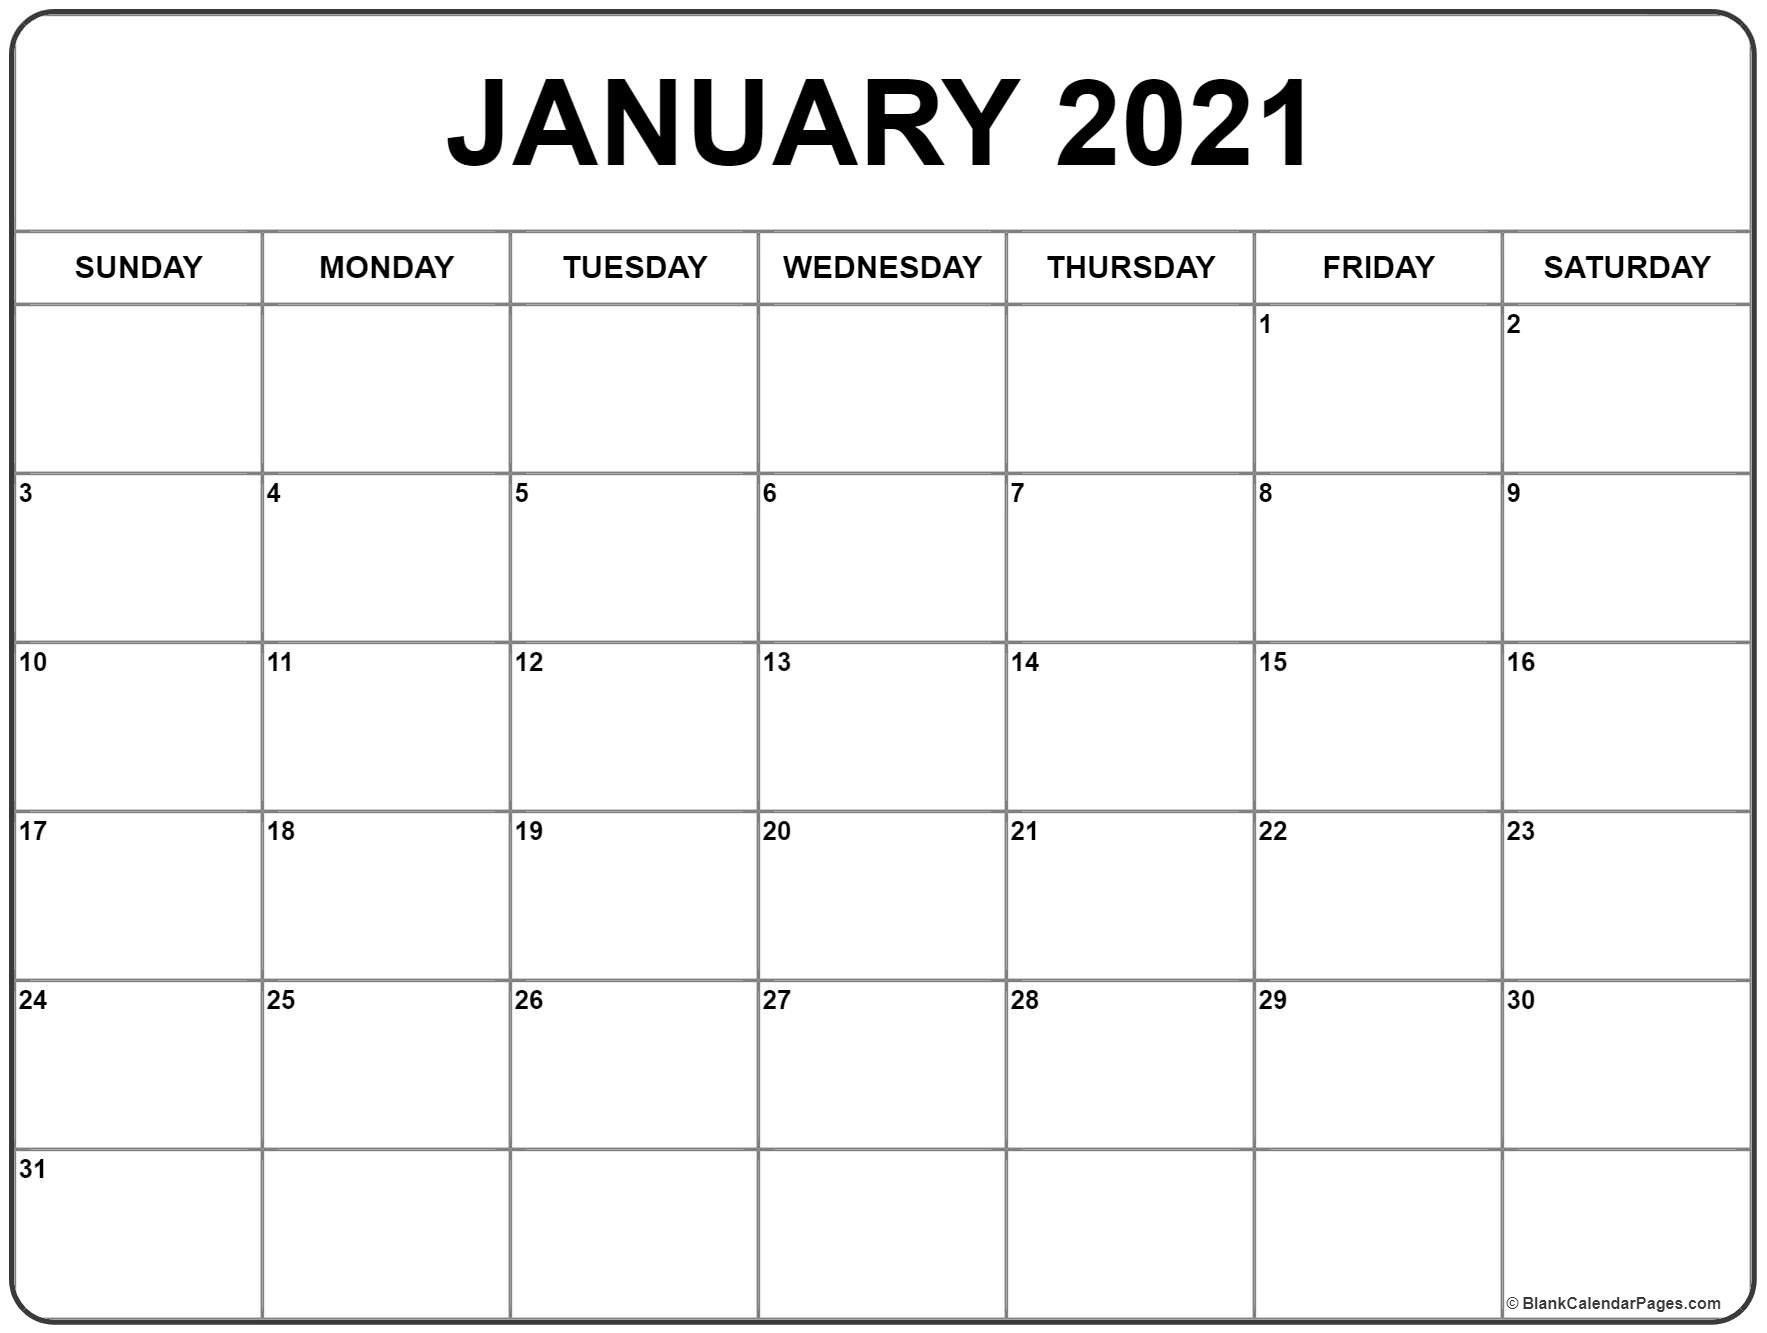 January 2021 Editable Calendar Take January 2021 Editable Calendar | Print calendar, Calendar